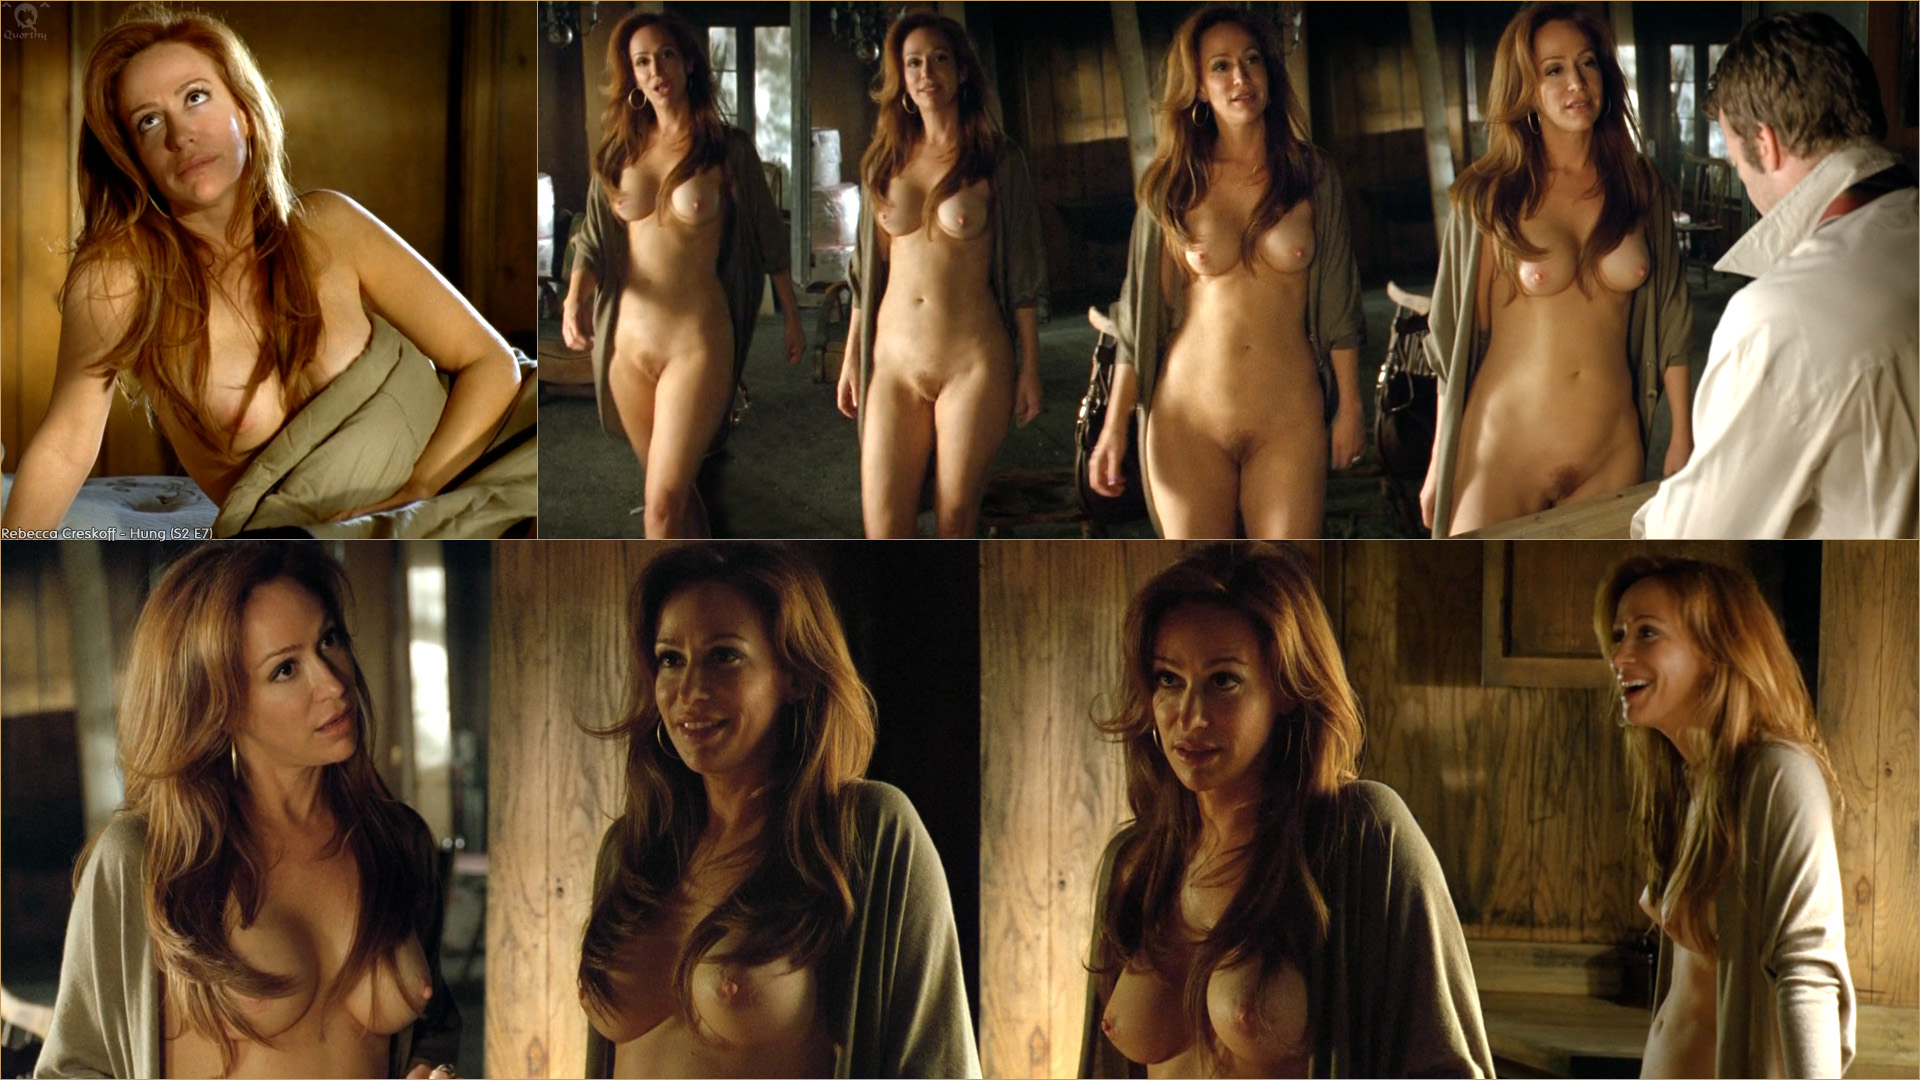 Rachel lefevre sexy, jade empire threesome